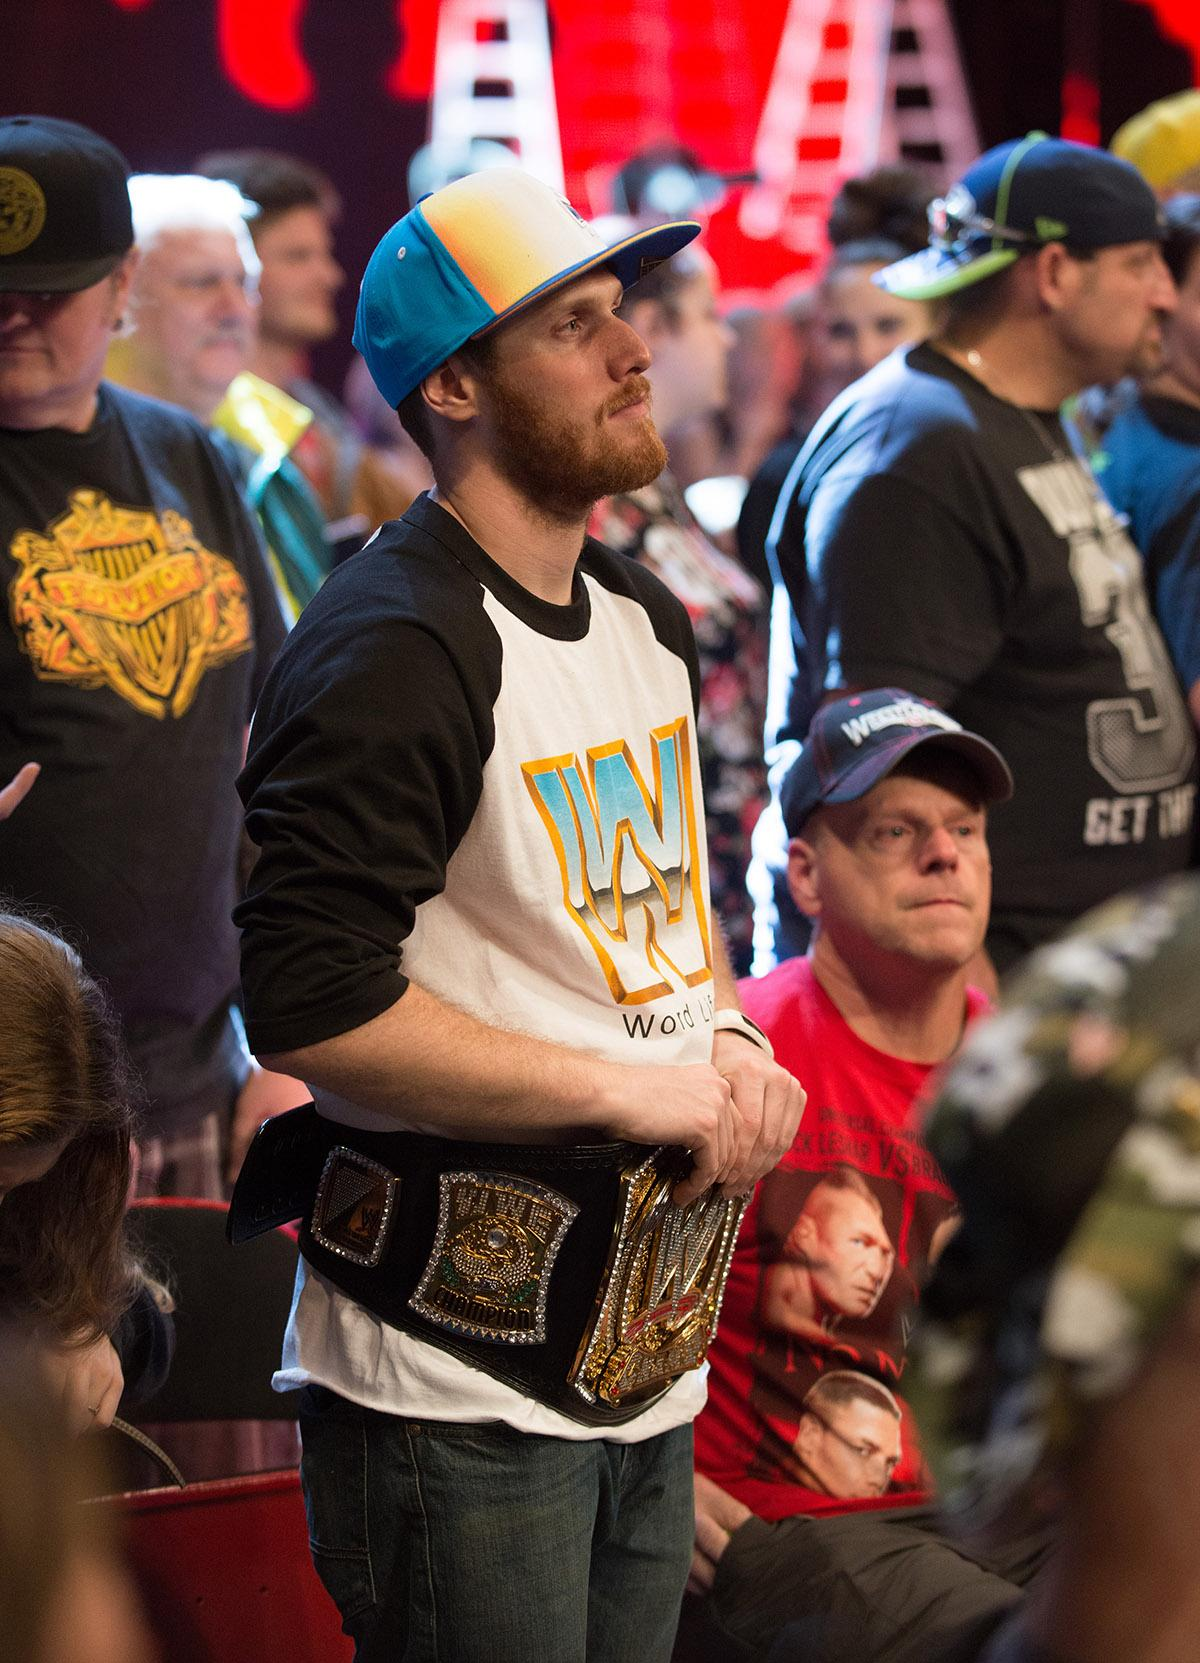 Wrestling fans filled Portland's Moda Center on for a live broadcast of Monday Night RAW, where some of WWE's  biggest stars step into the ring for a night of action-packed matches. (KATU photo by Tristan Fortsch 10-16-2017)